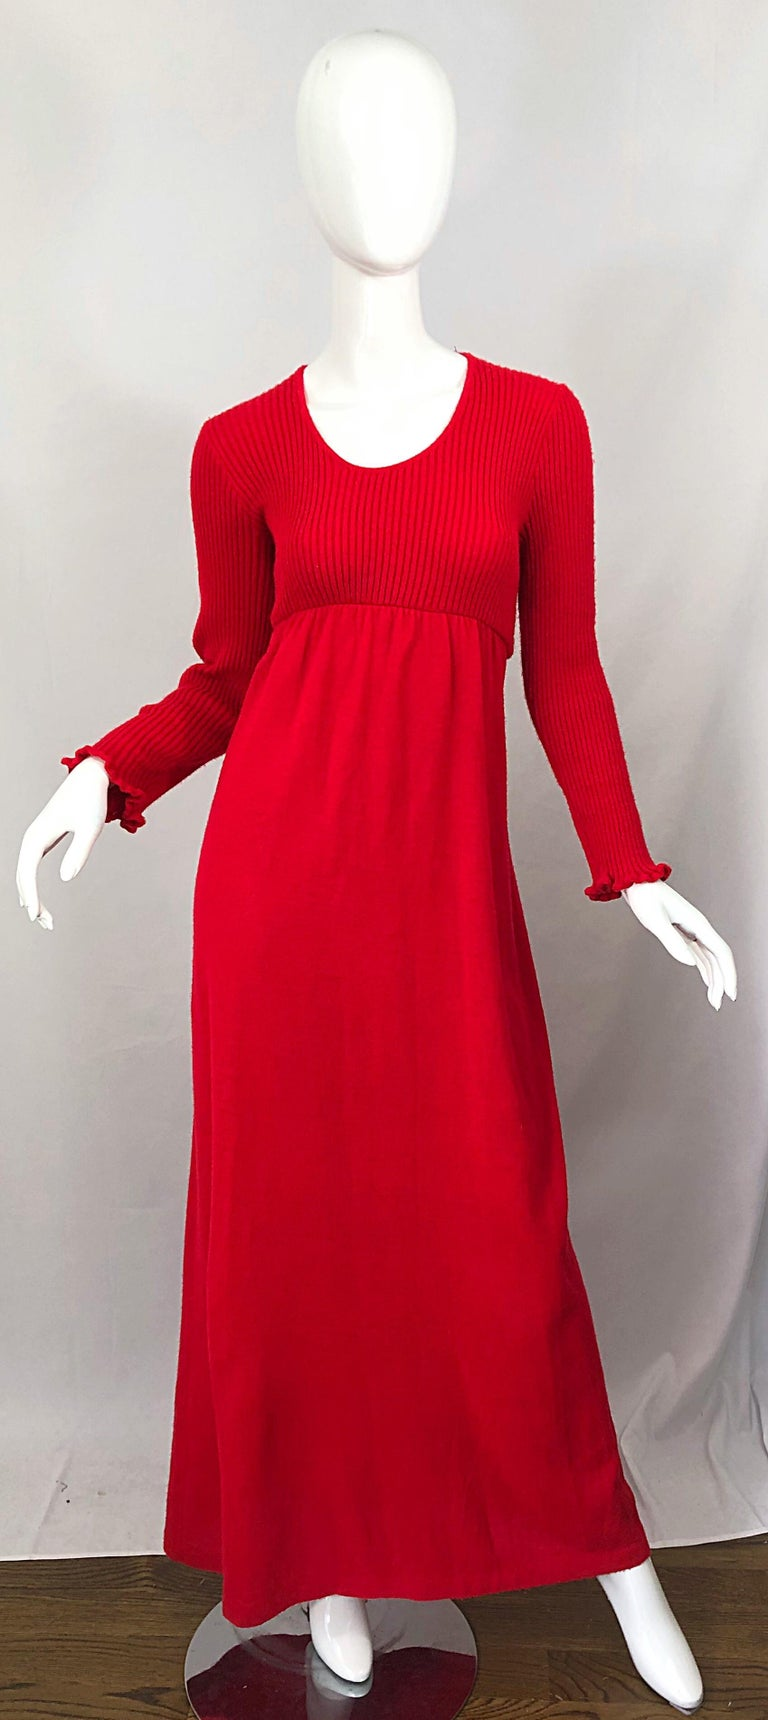 Chic vintage JOSEPH MAGNIN lipstick red long sleeve wool sweater dress! Features a soft wool knit that has plenty of stretch. Vibrant lipstick red color is the perfect alternative to black. Flattering tailored scoop neck bodice with an empire like